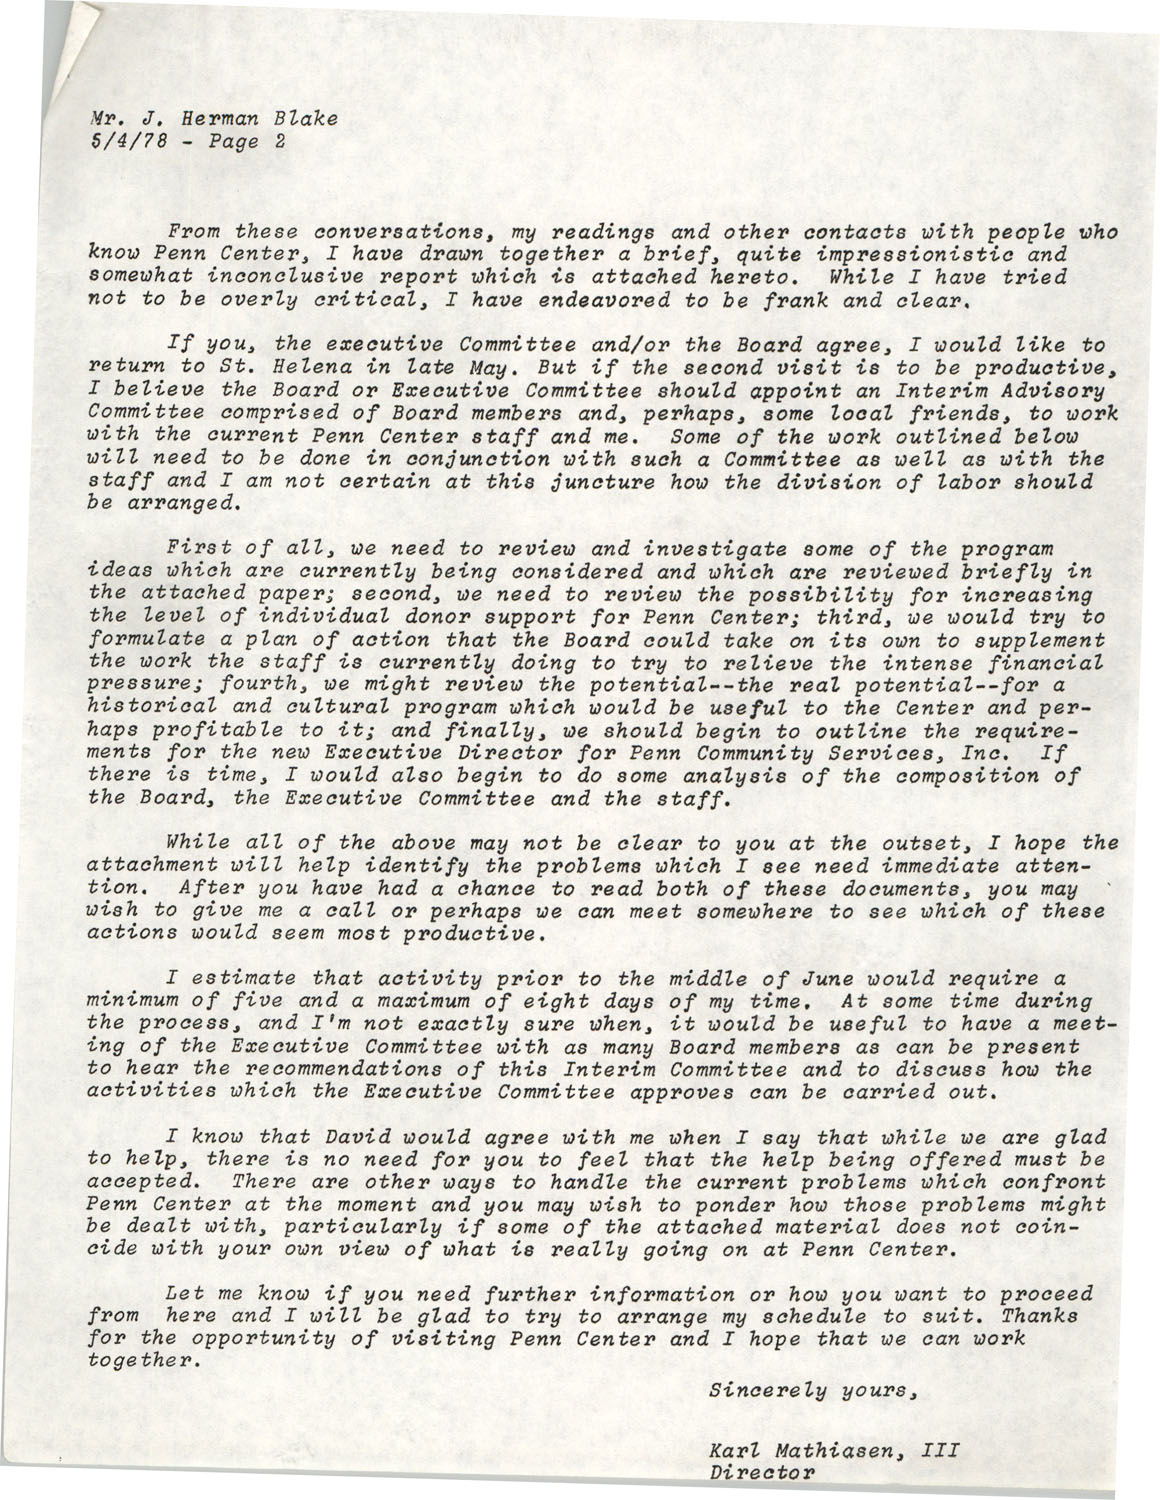 Planning and Management Assistance Project Report, Penn Community Services, May 1978, Page 2